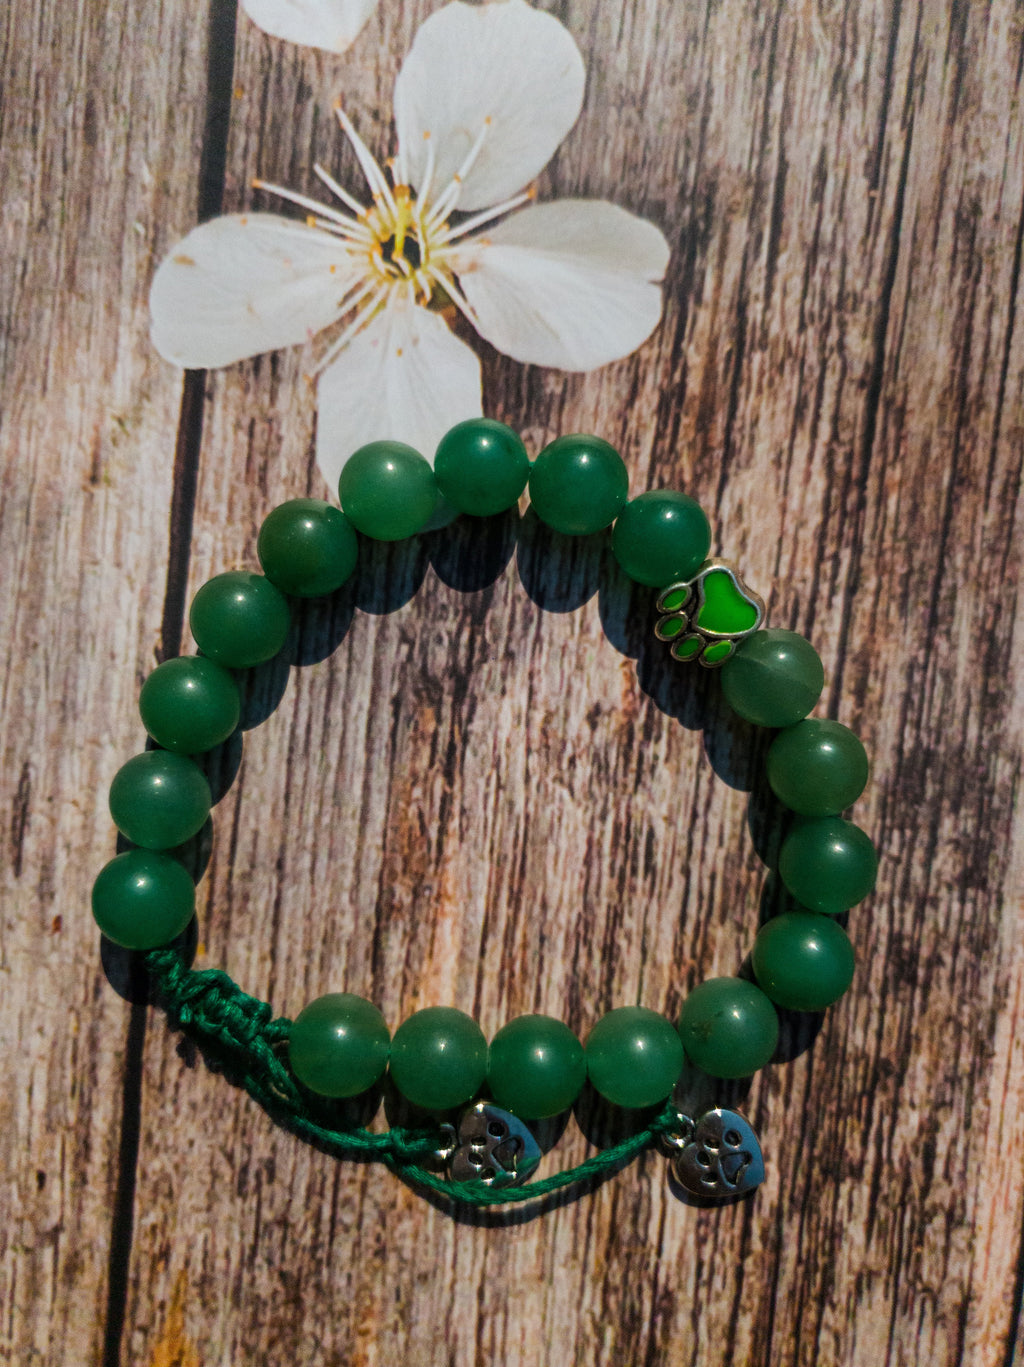 I Love My Dog, Green Aventurine adjustable unisex bracelet